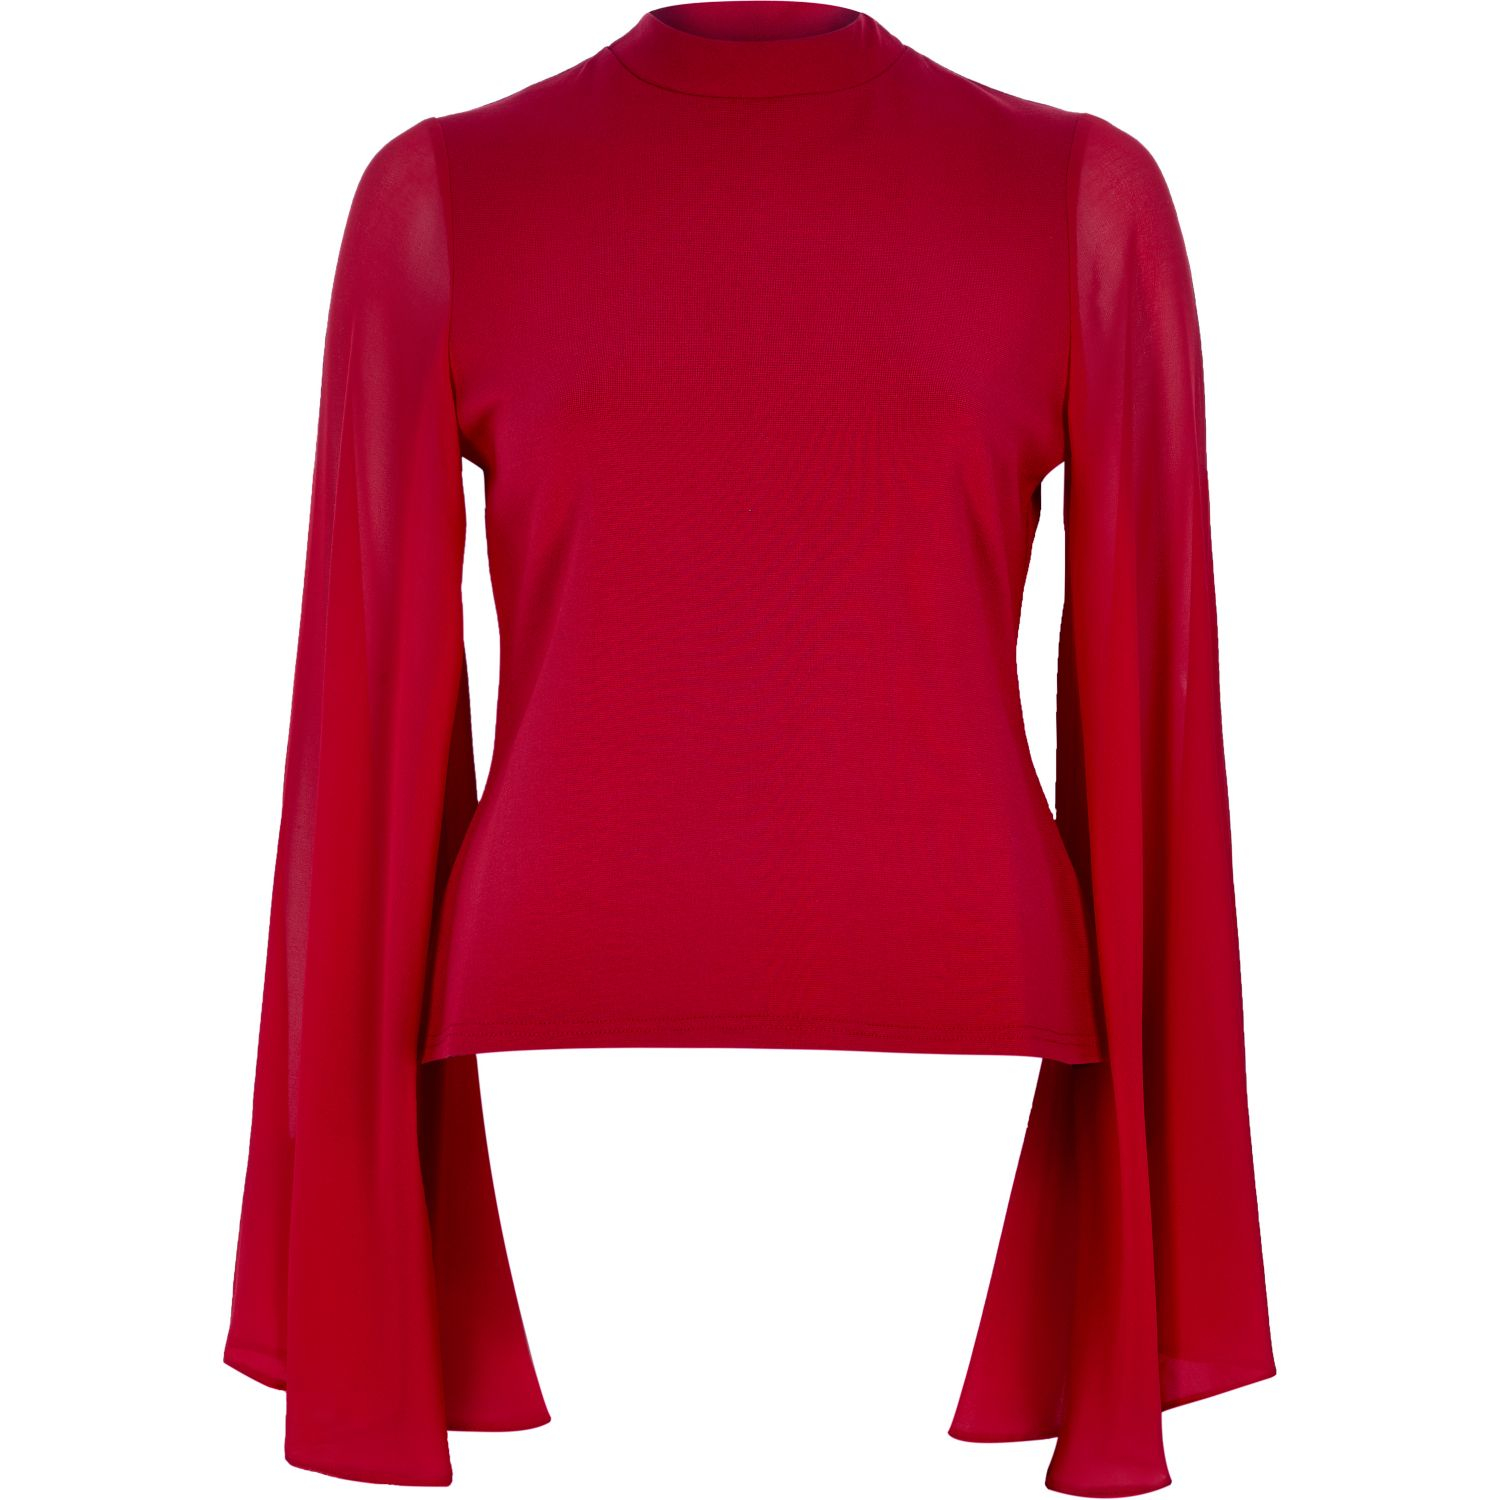 b73d9b873d0 River Island Red Flared Sleeve Cut-out Back Top in Red - Lyst